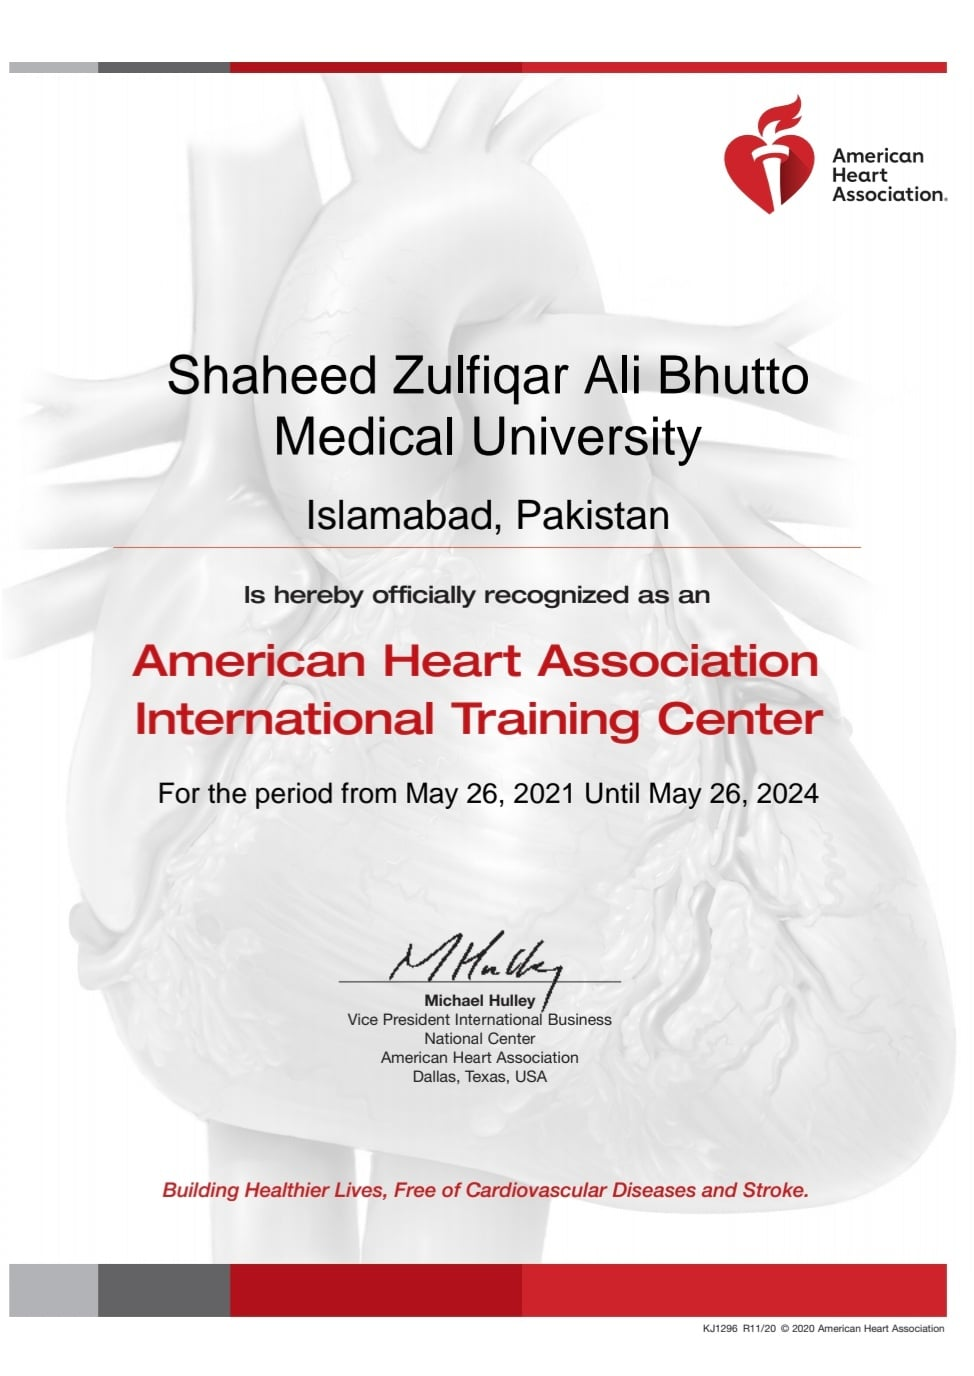 SZABMU is officially recognized as an American Heart Association International Training Center until May, 2024